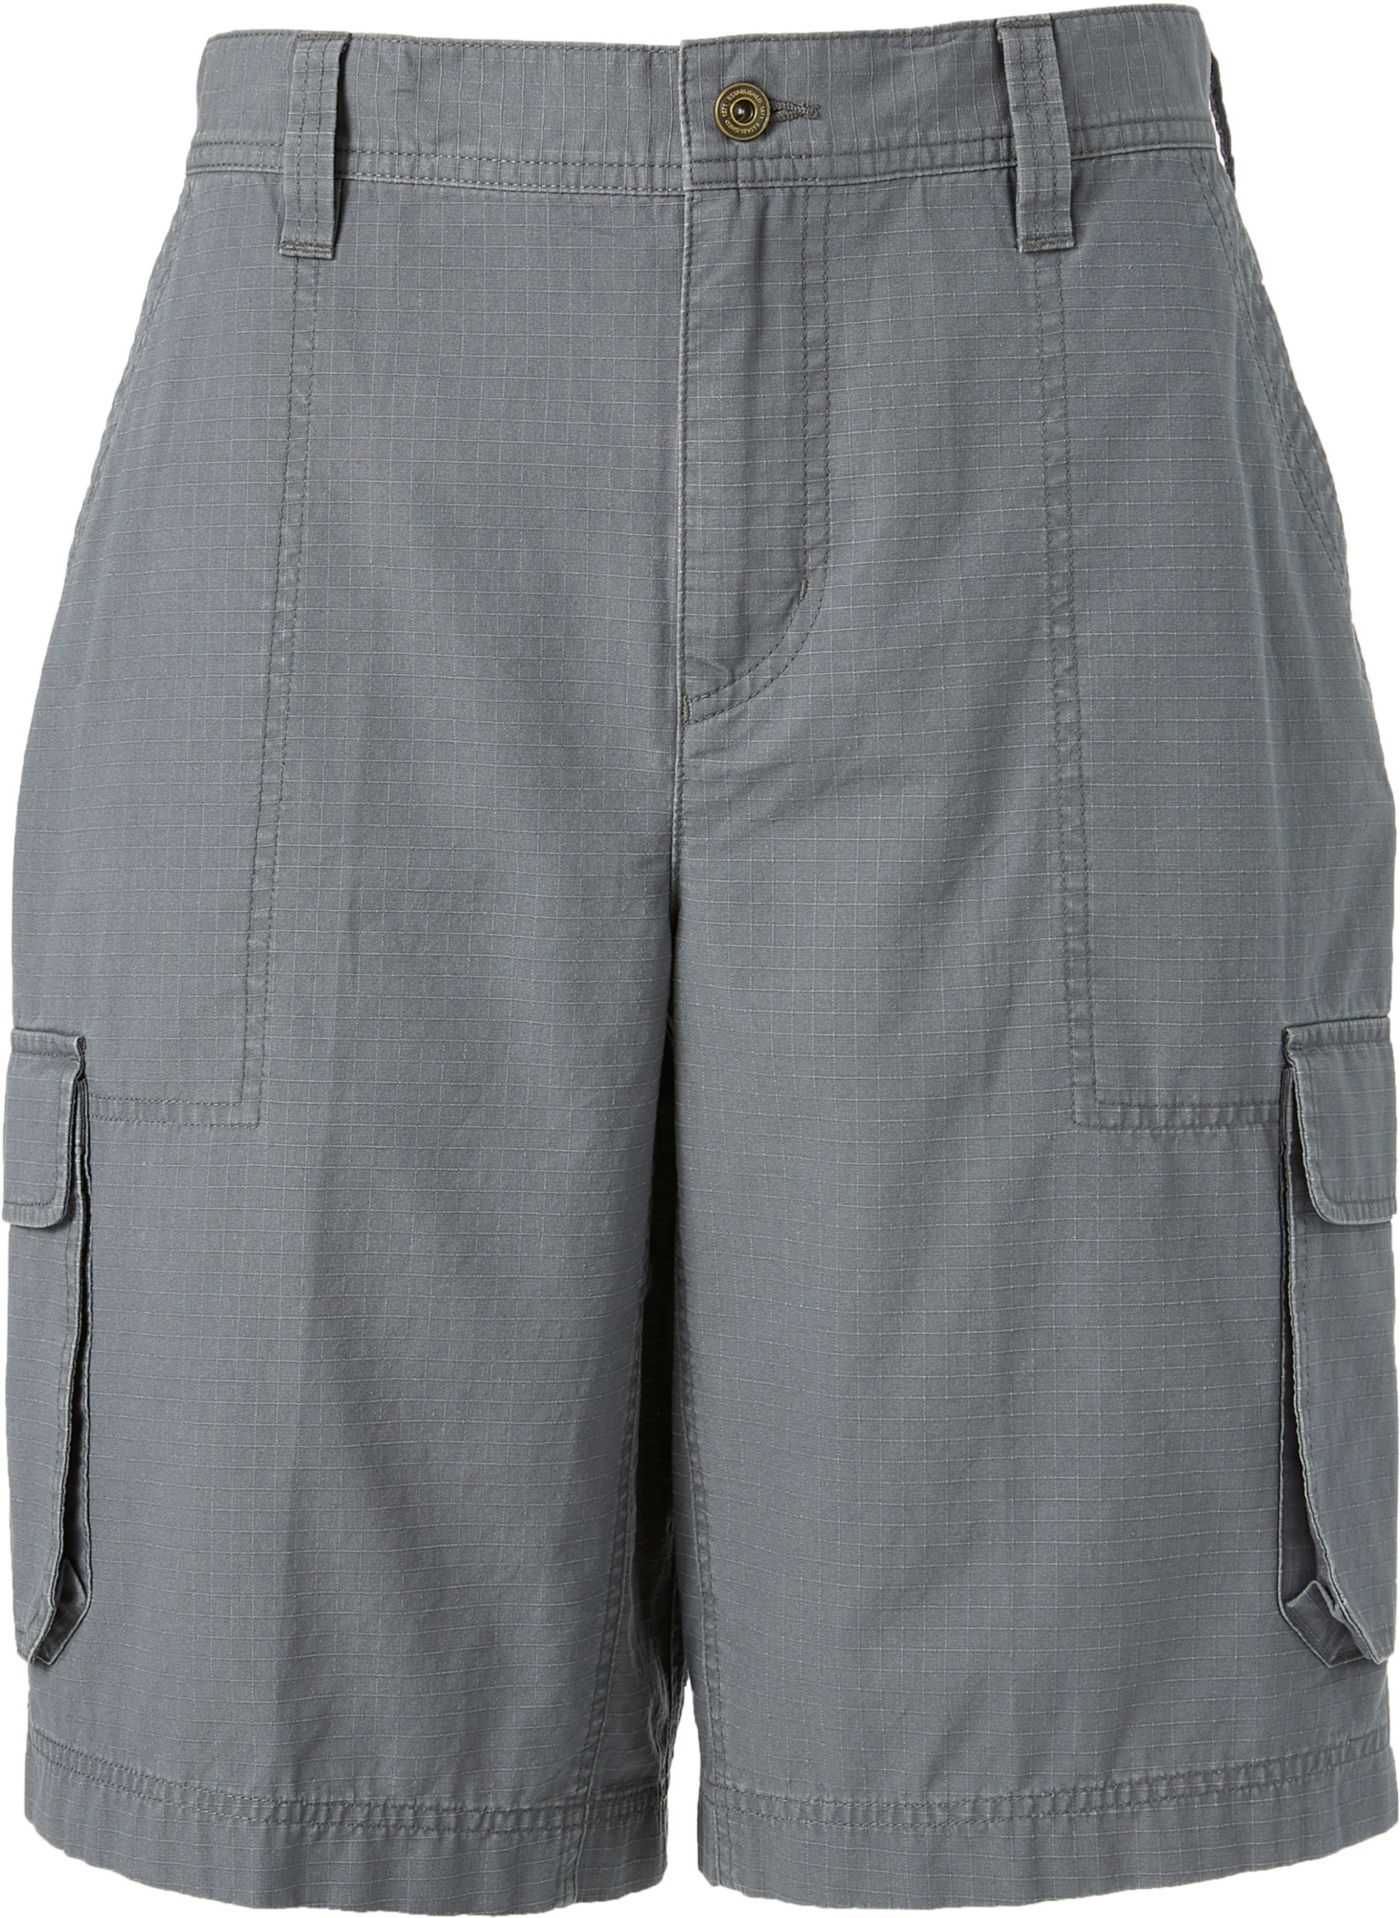 Field & Stream Men's Ripstop Cargo Shorts